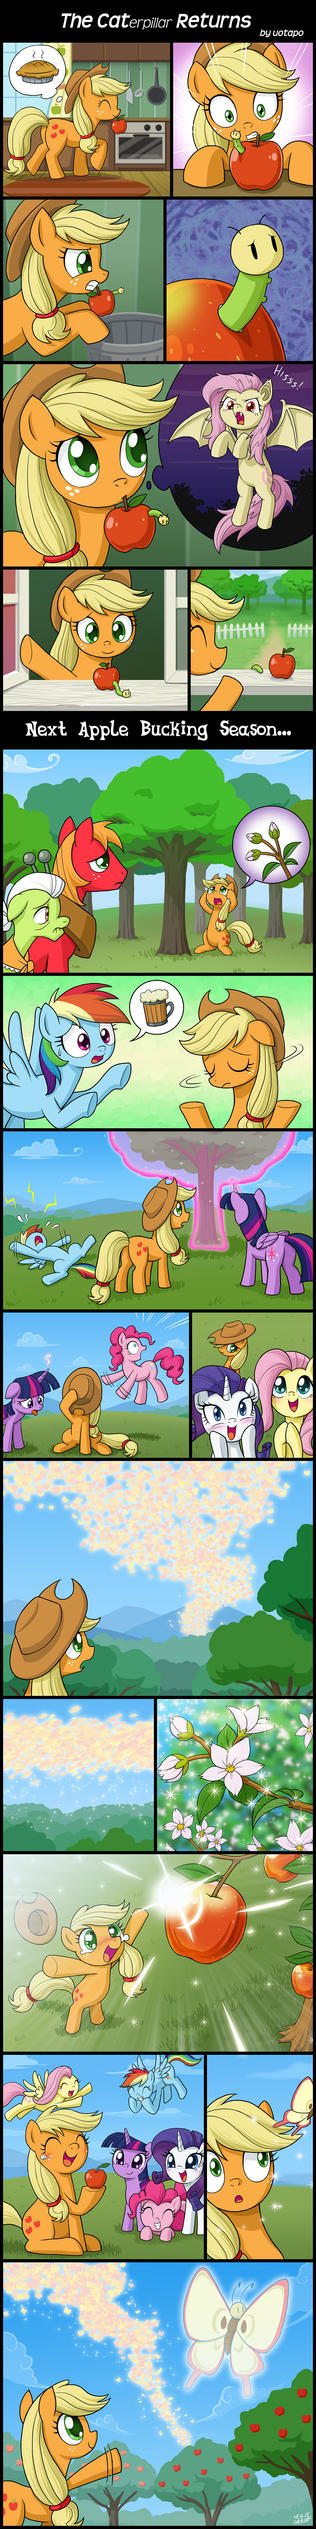 The Caterpillar Returns by uotapo